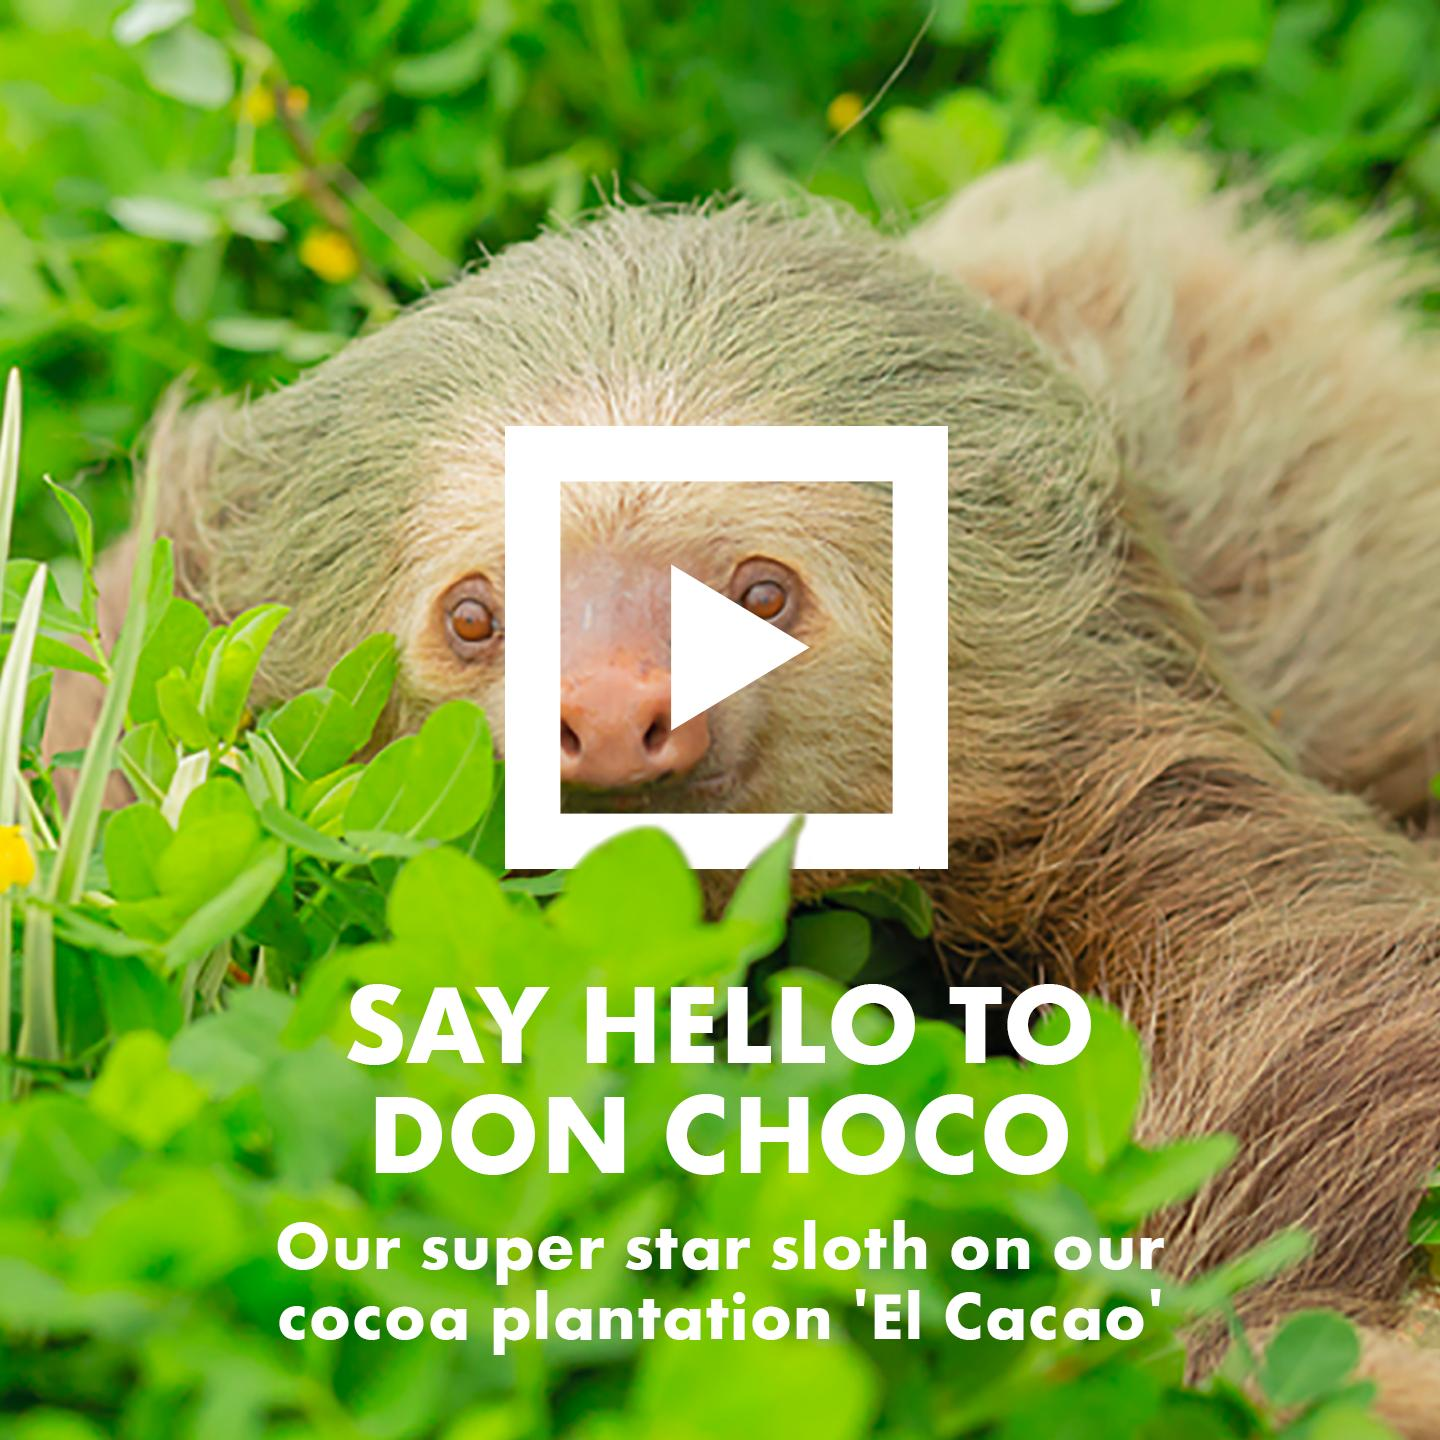 Say Hello To Don Choco. Our super star sloth on our cocoa plantation 'El Cacao'.